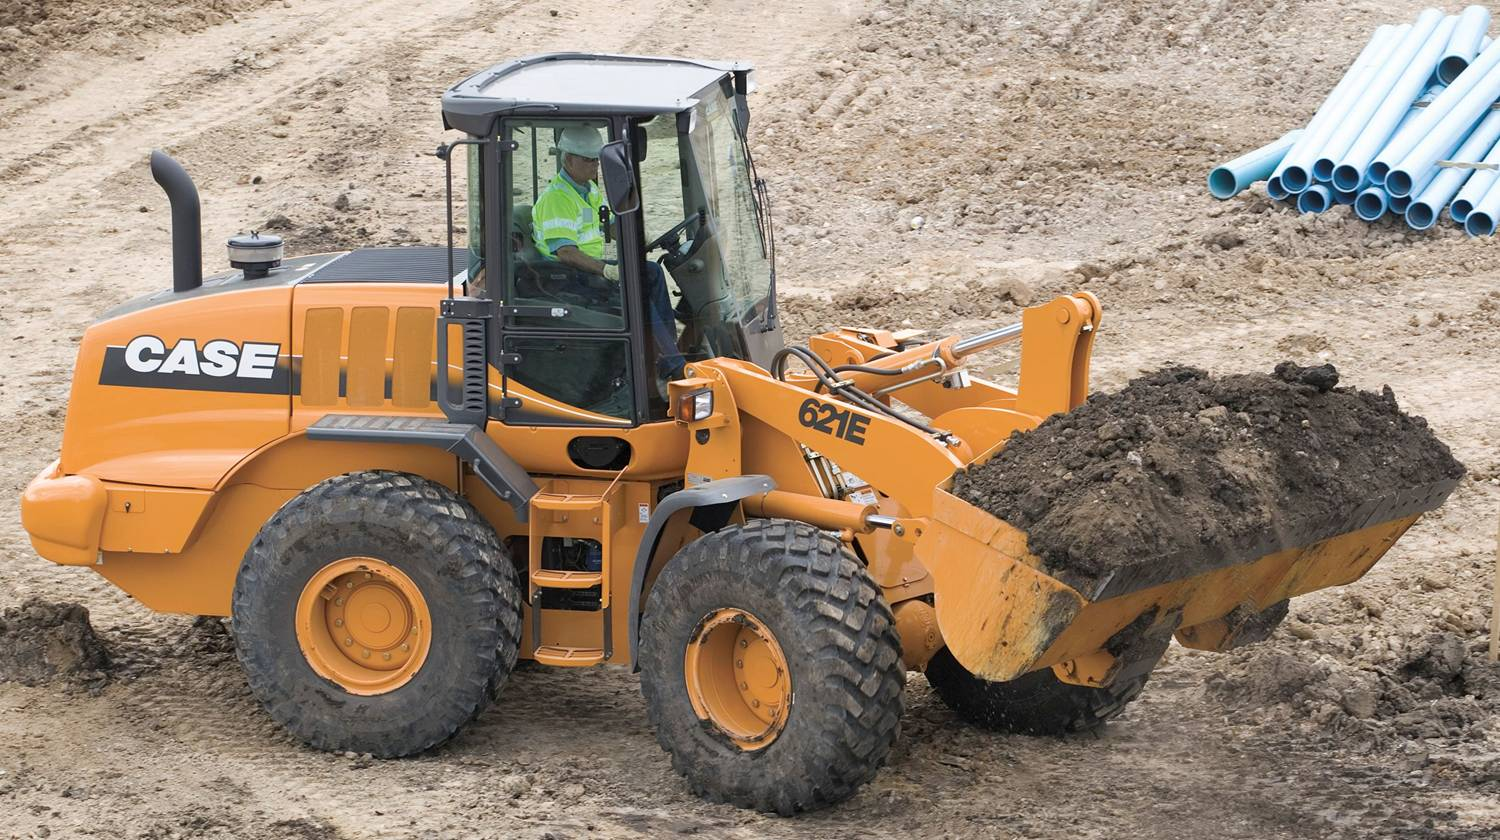 Case wheel loader 621e purchase online for Avis e case construction